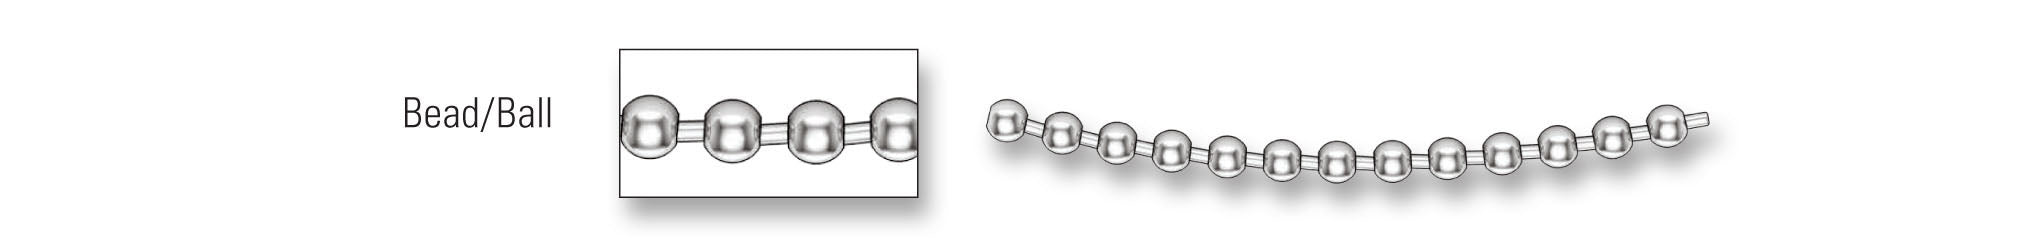 Chains - Bead and Ball Link